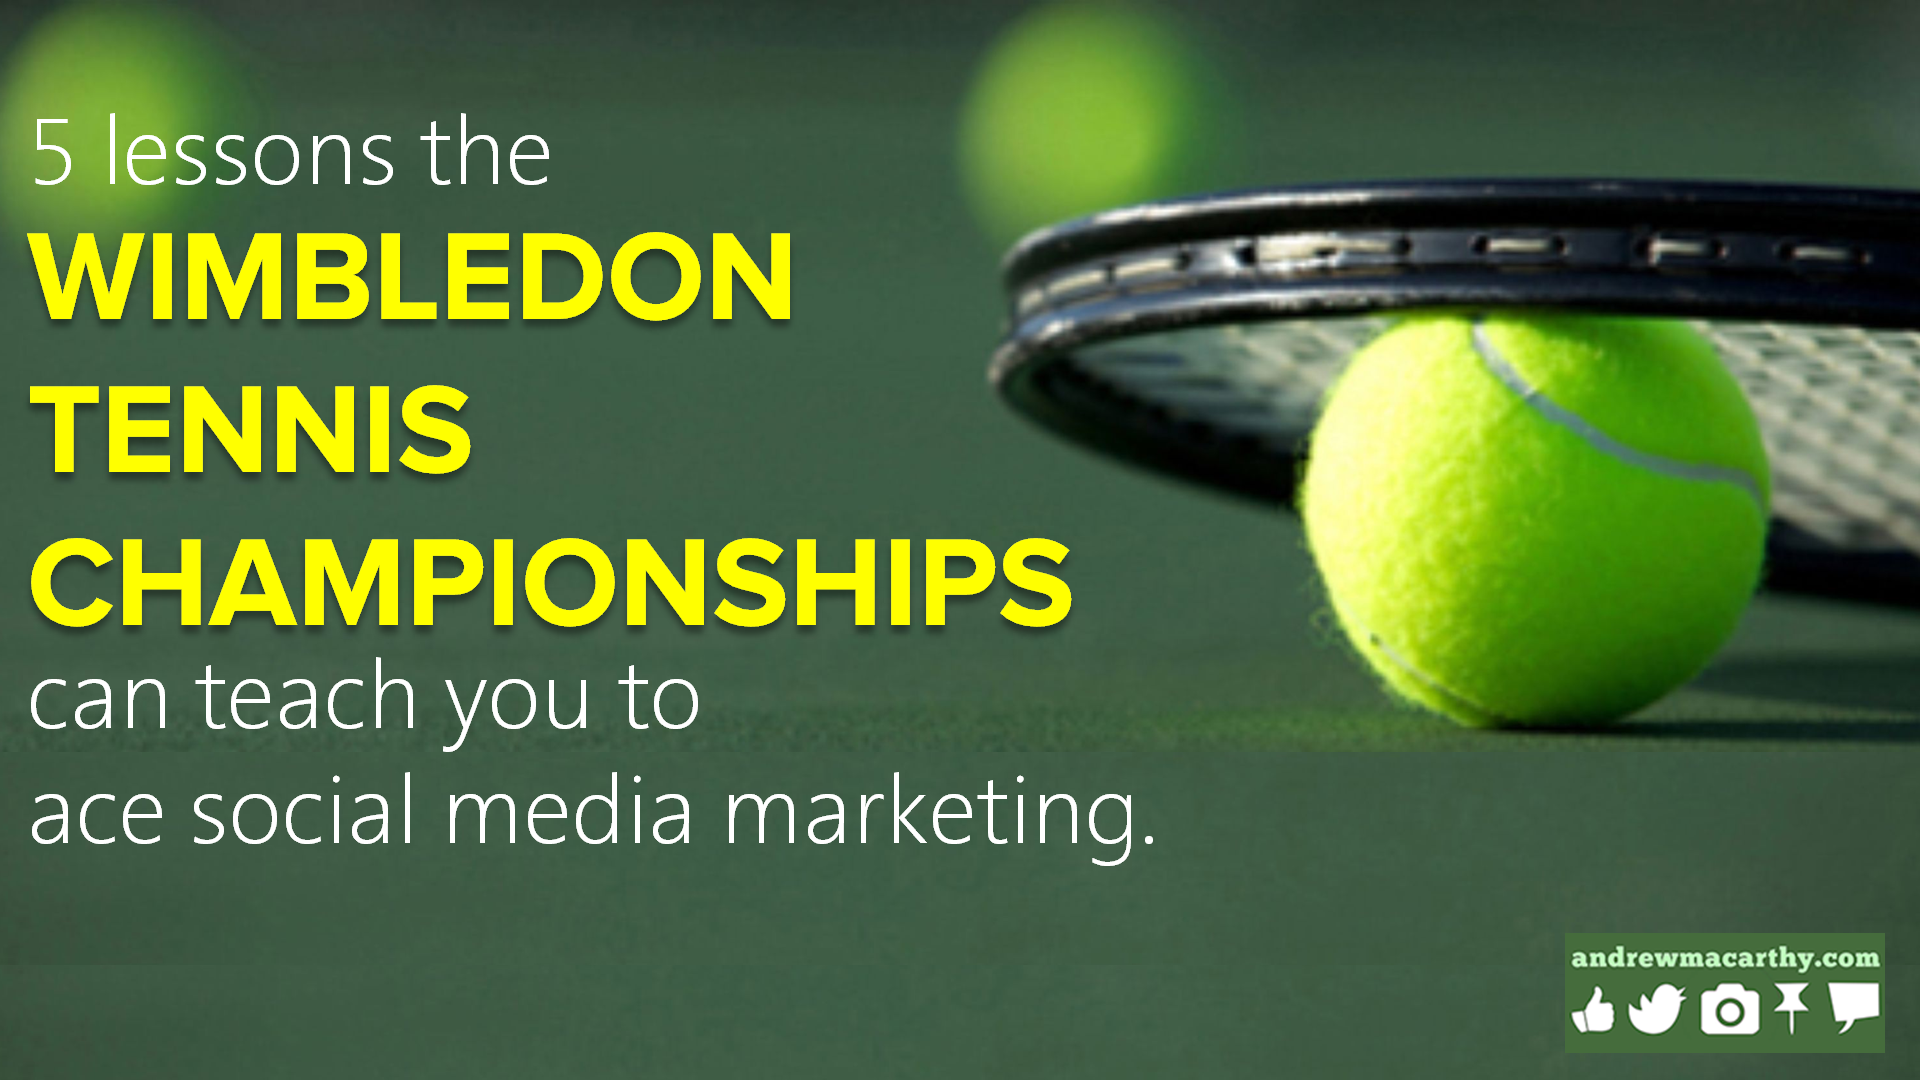 5 Lessons the Wimbledon Tennis Championships Can Teach You to Ace Social Media Marketing